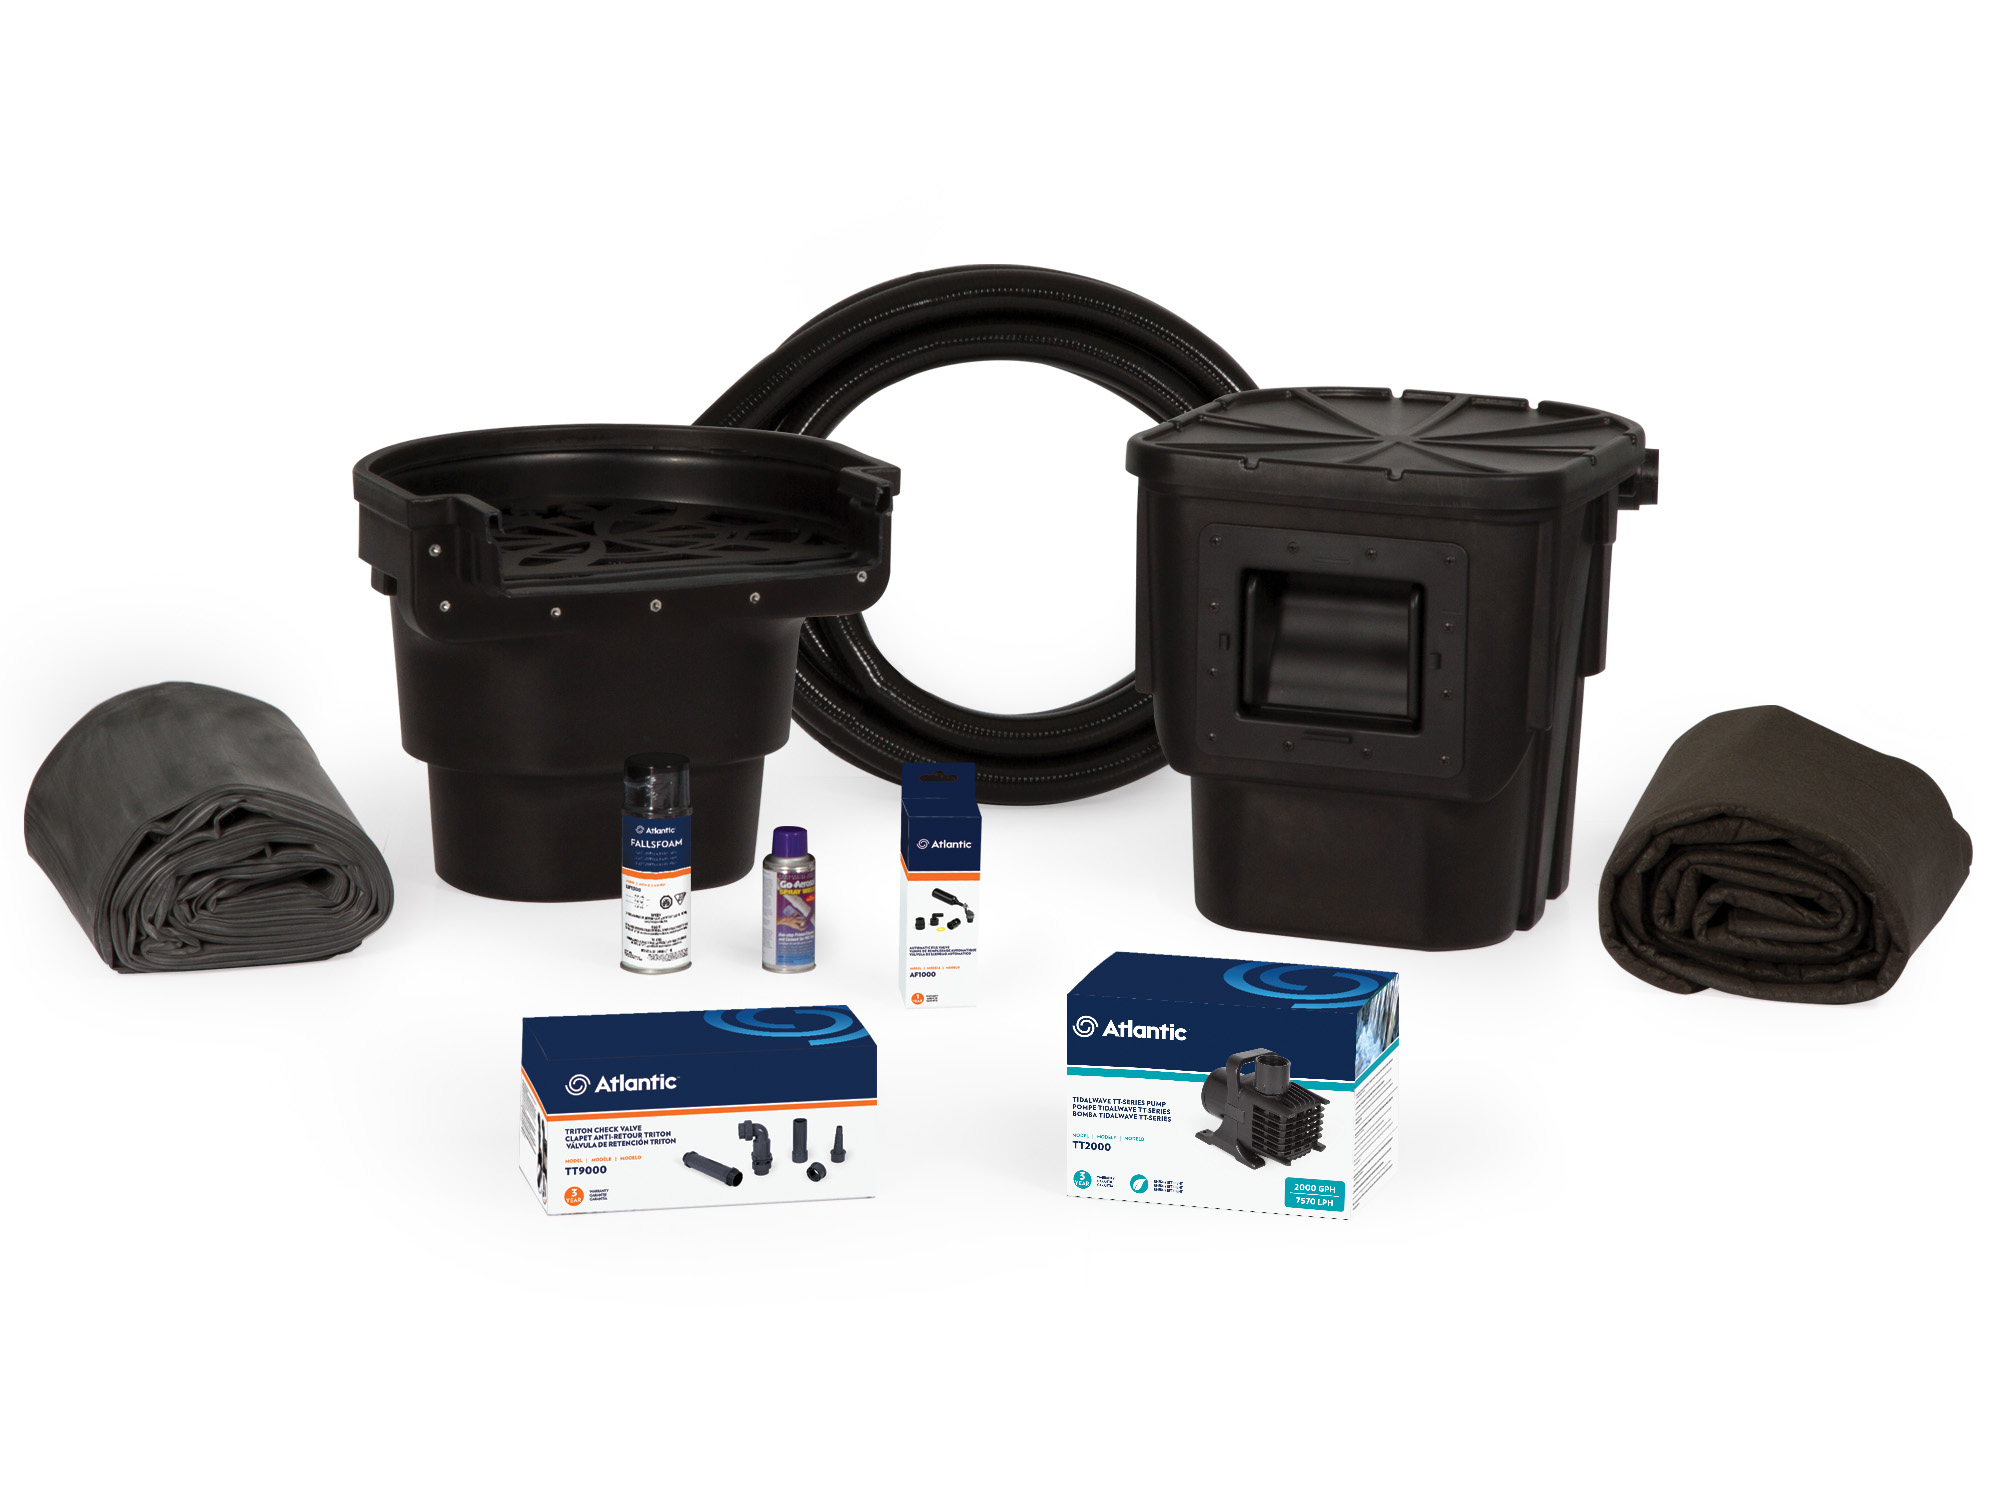 PK161015 - Small Pond Kit